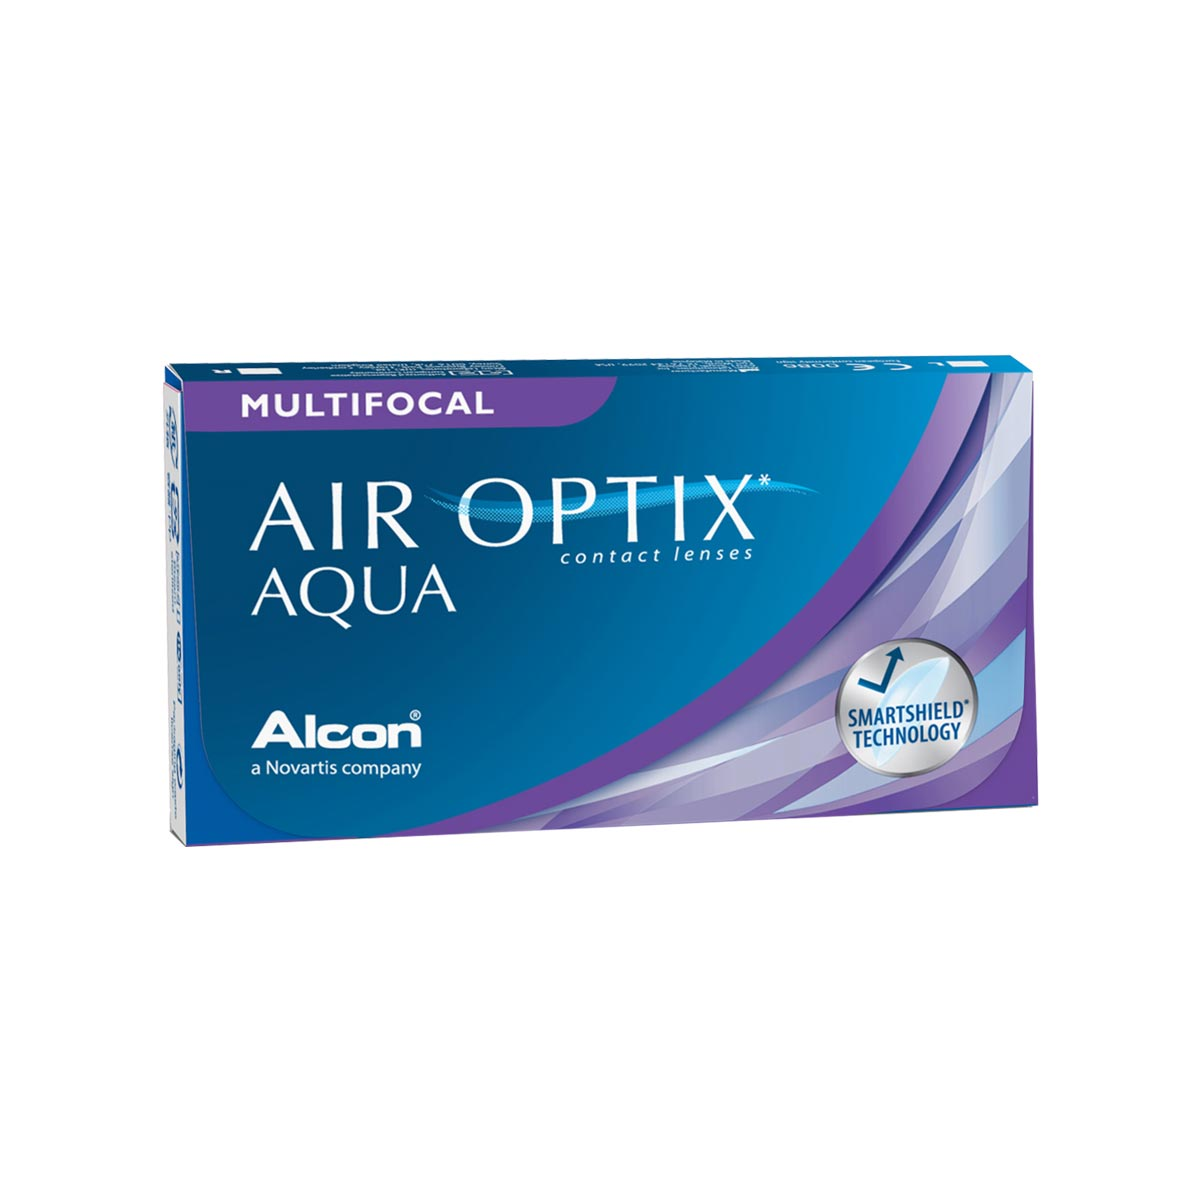 Air Optix Aqua Multifocal (3 lenses)